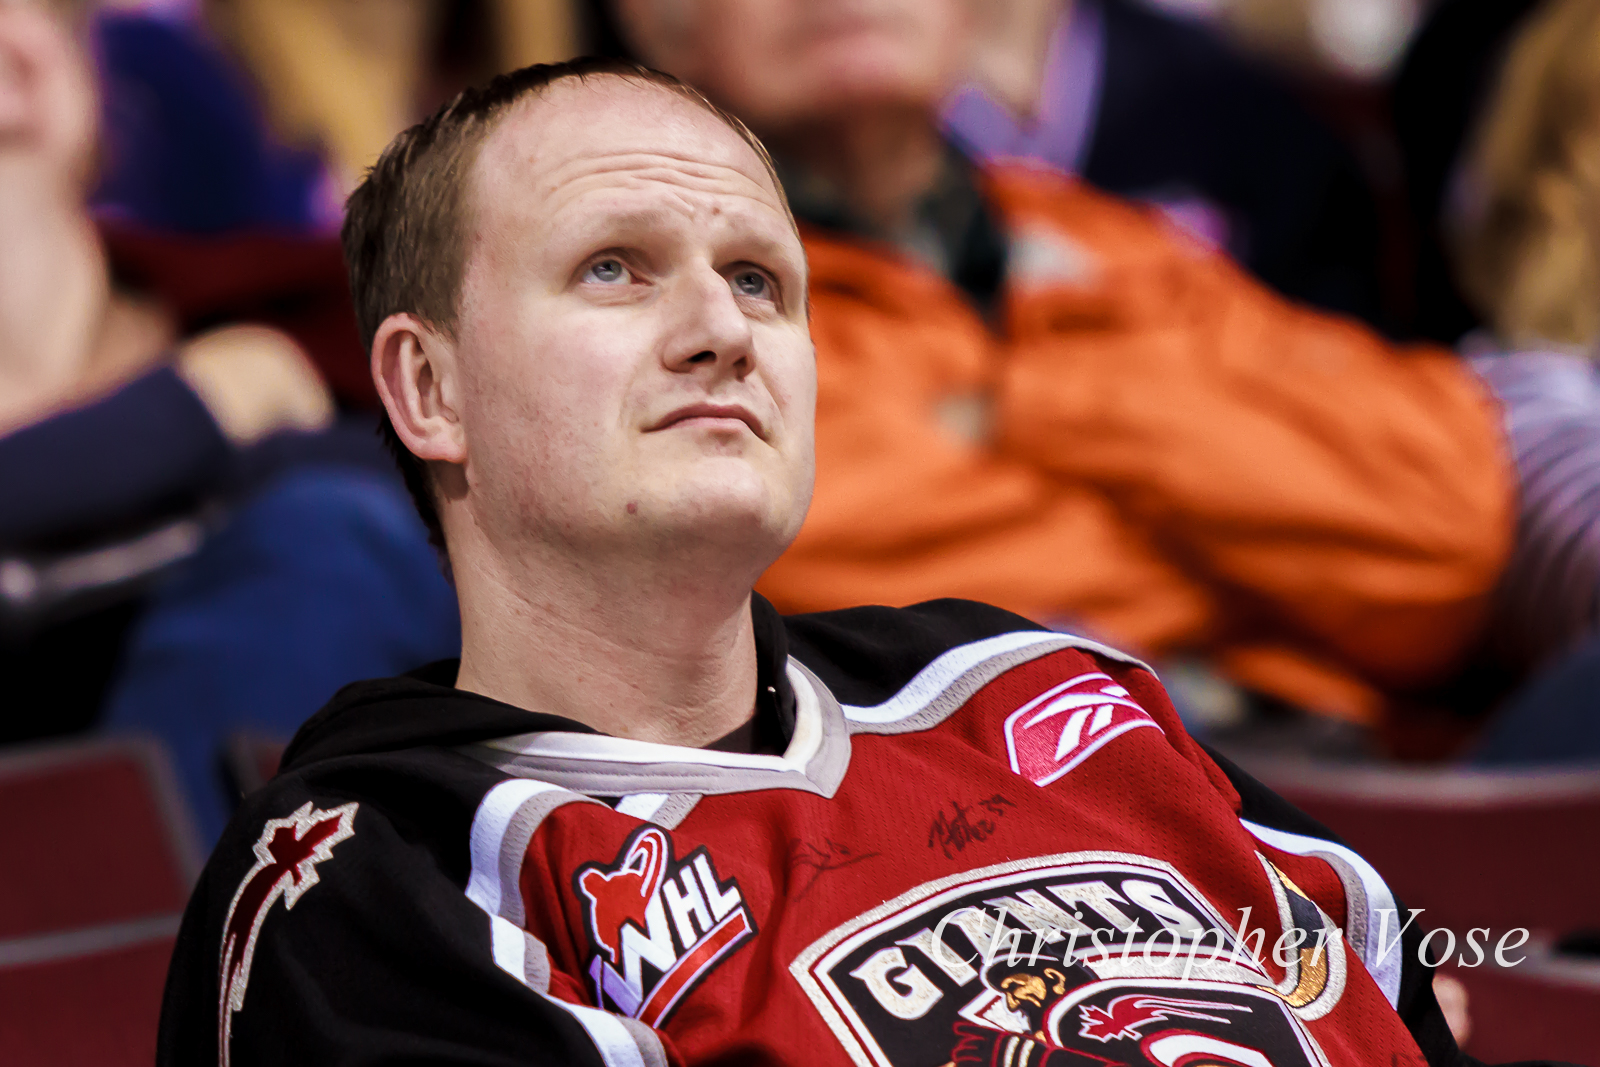 2015-03-10 Vancouver Giants Supporter 3.jpg